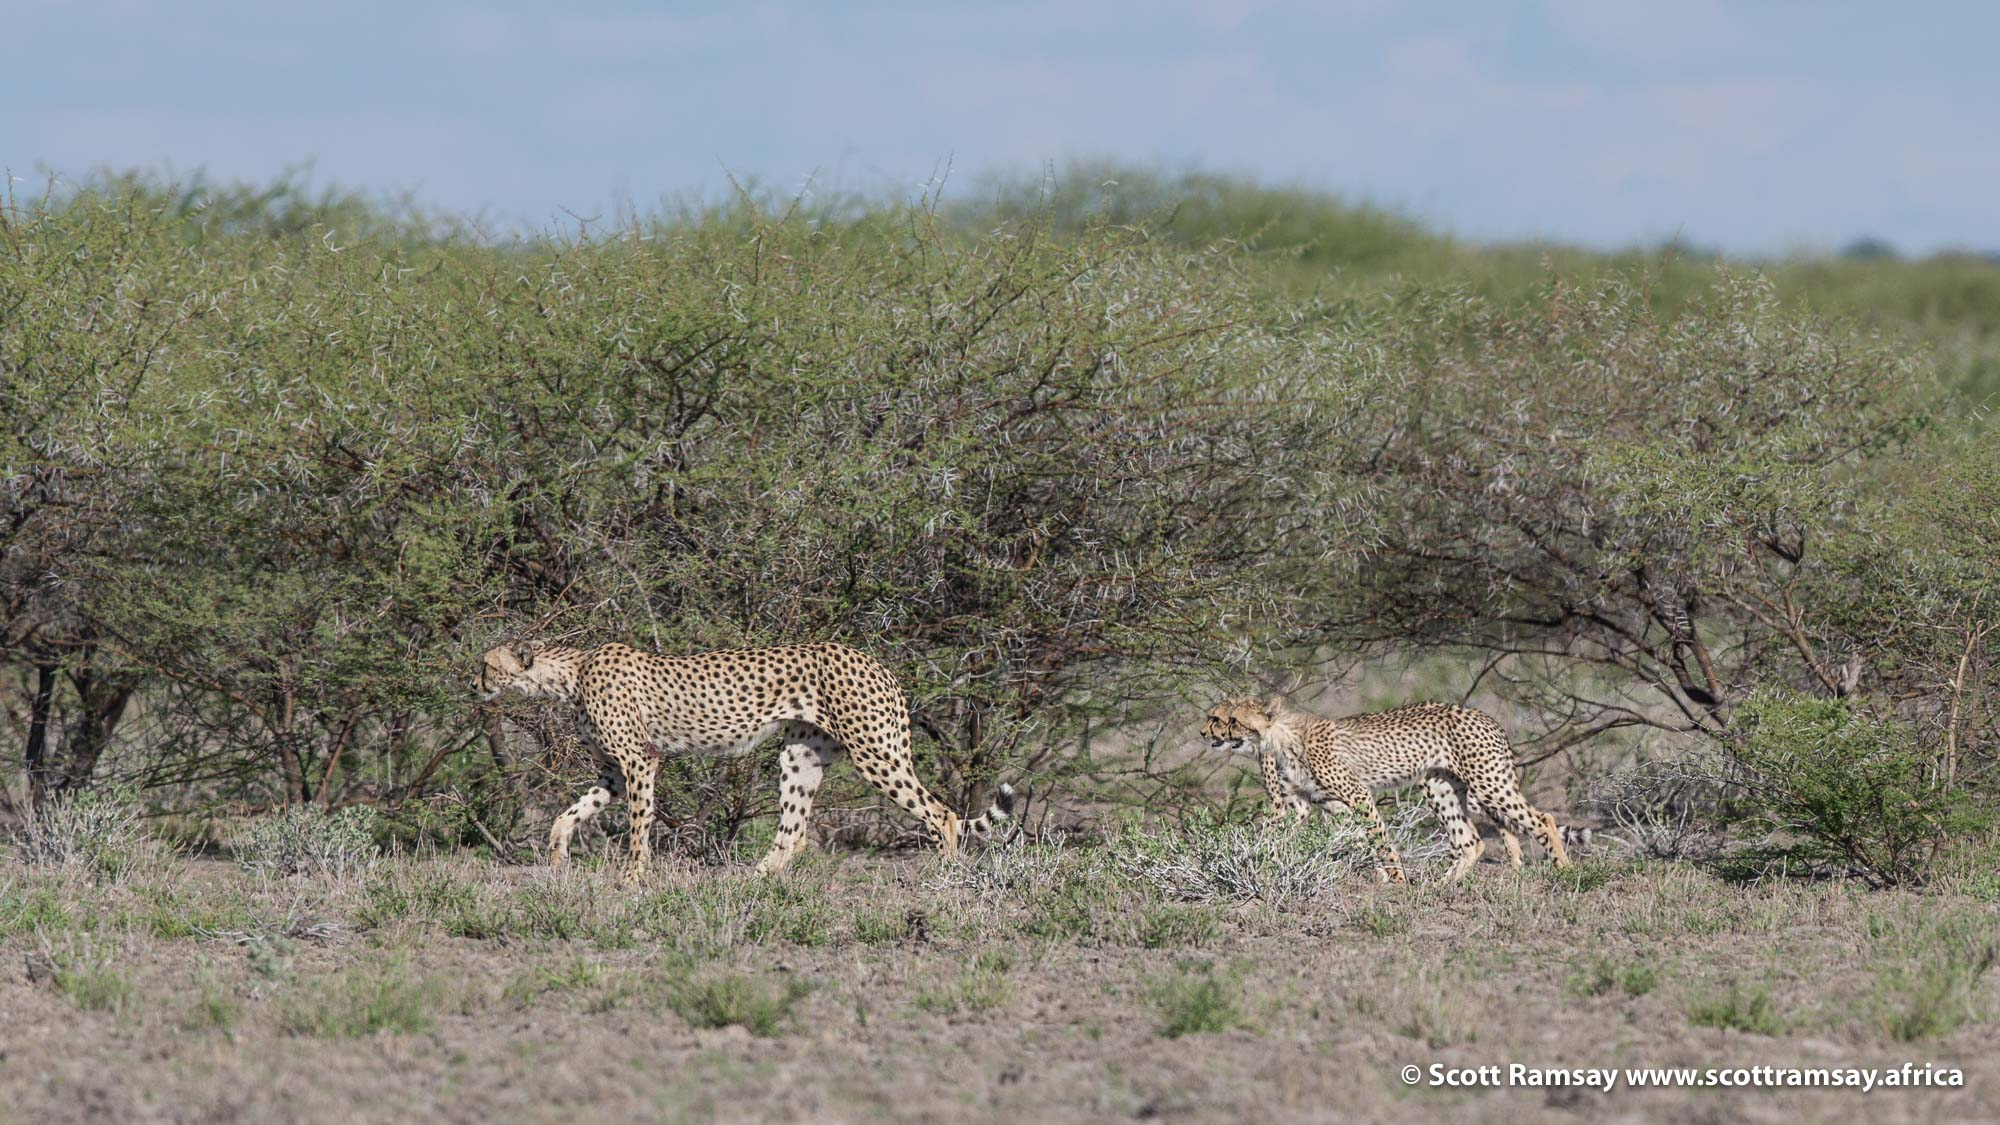 Later in the day, when the mist had cleared and the intense heat had returned, we spotted this cheetah mother and her two sub-adult cubs hunting on the edge of Deception Pan, using the acacia thicket as cover.